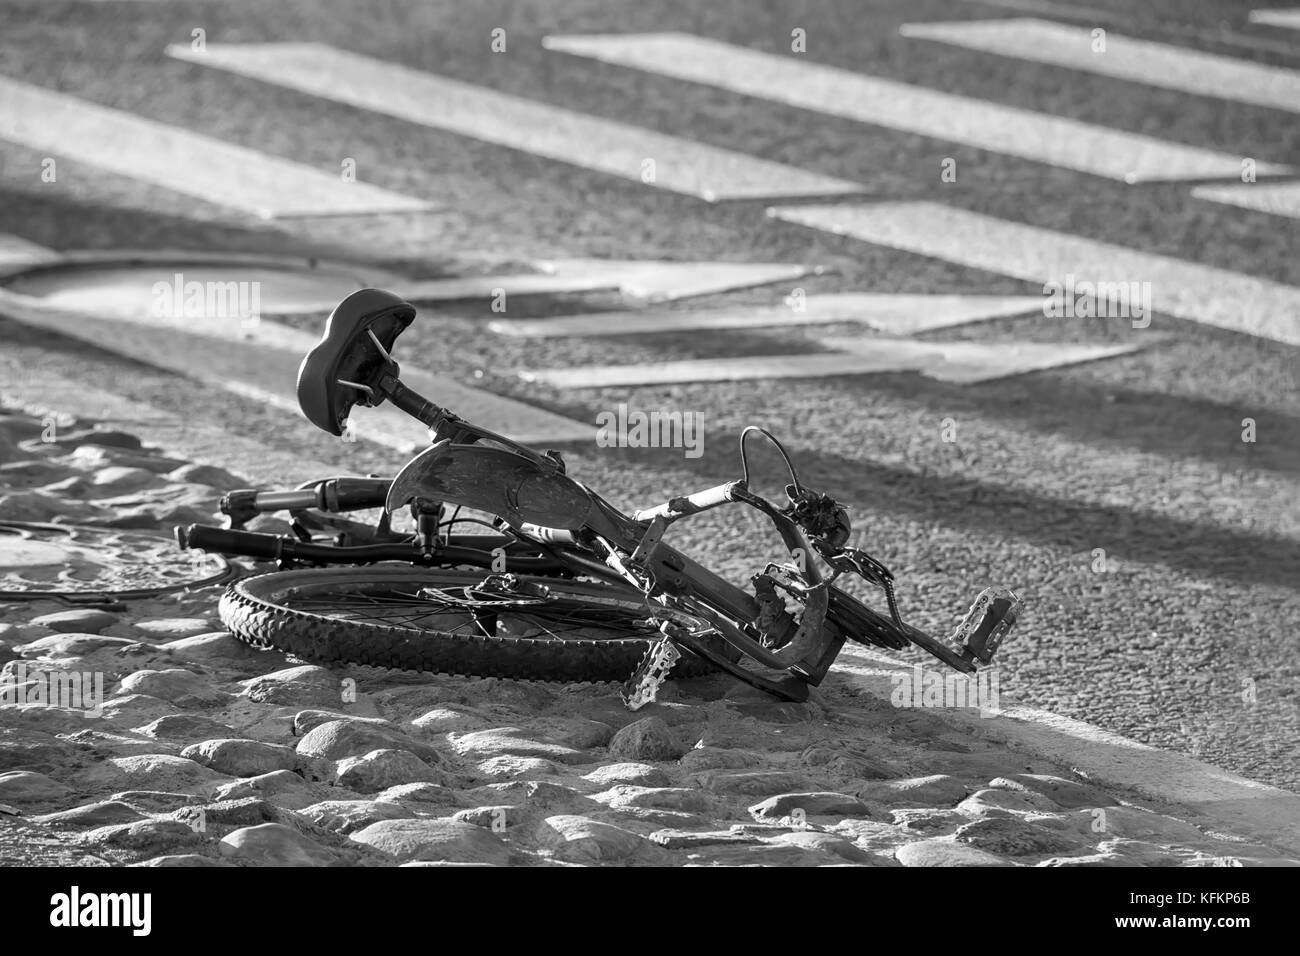 Crushed bike on the ground. Road accident  theme. Black and white photo - Stock Image